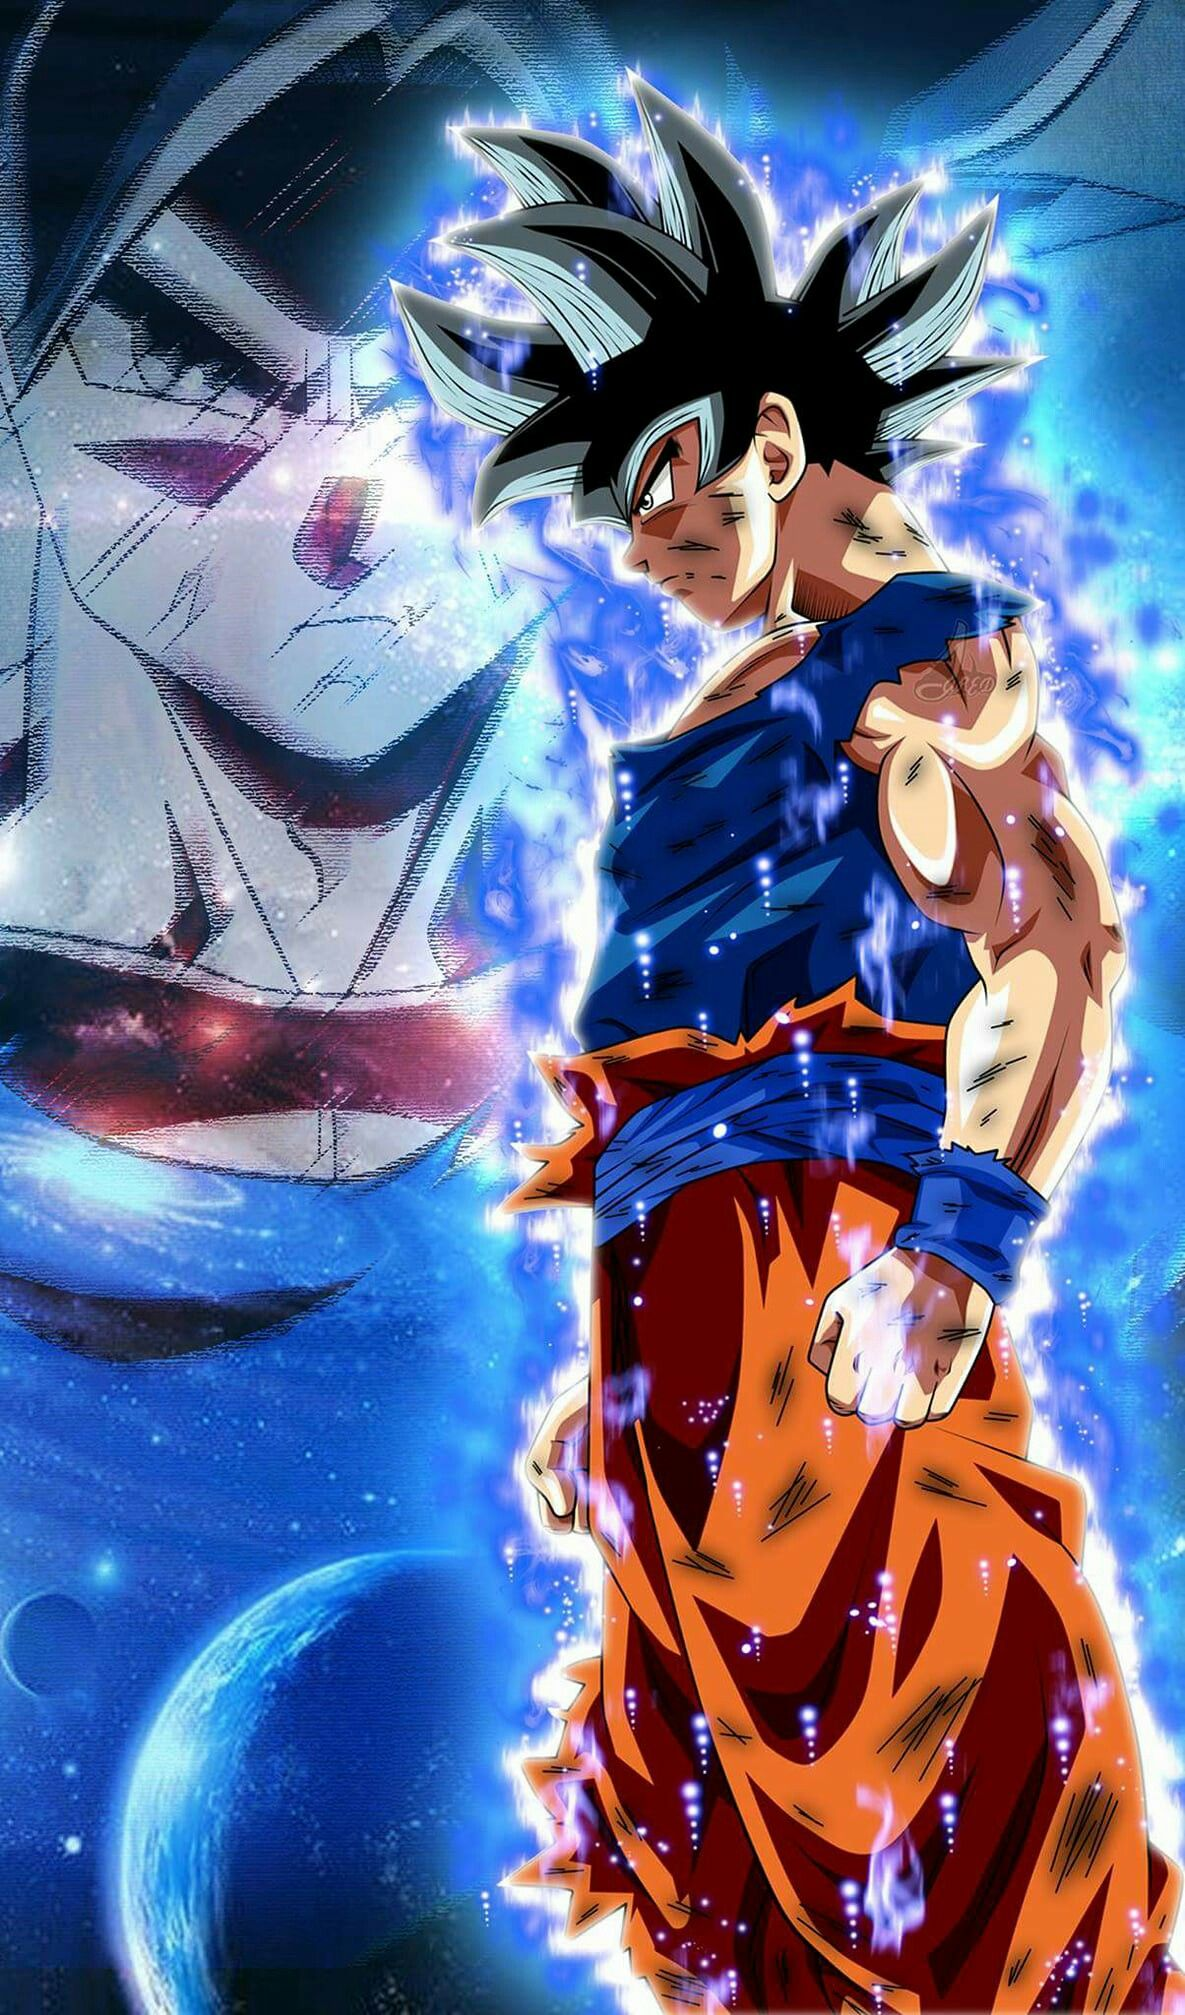 Awesome Ultra Instinct Personajes De Dragon Ball Dragones